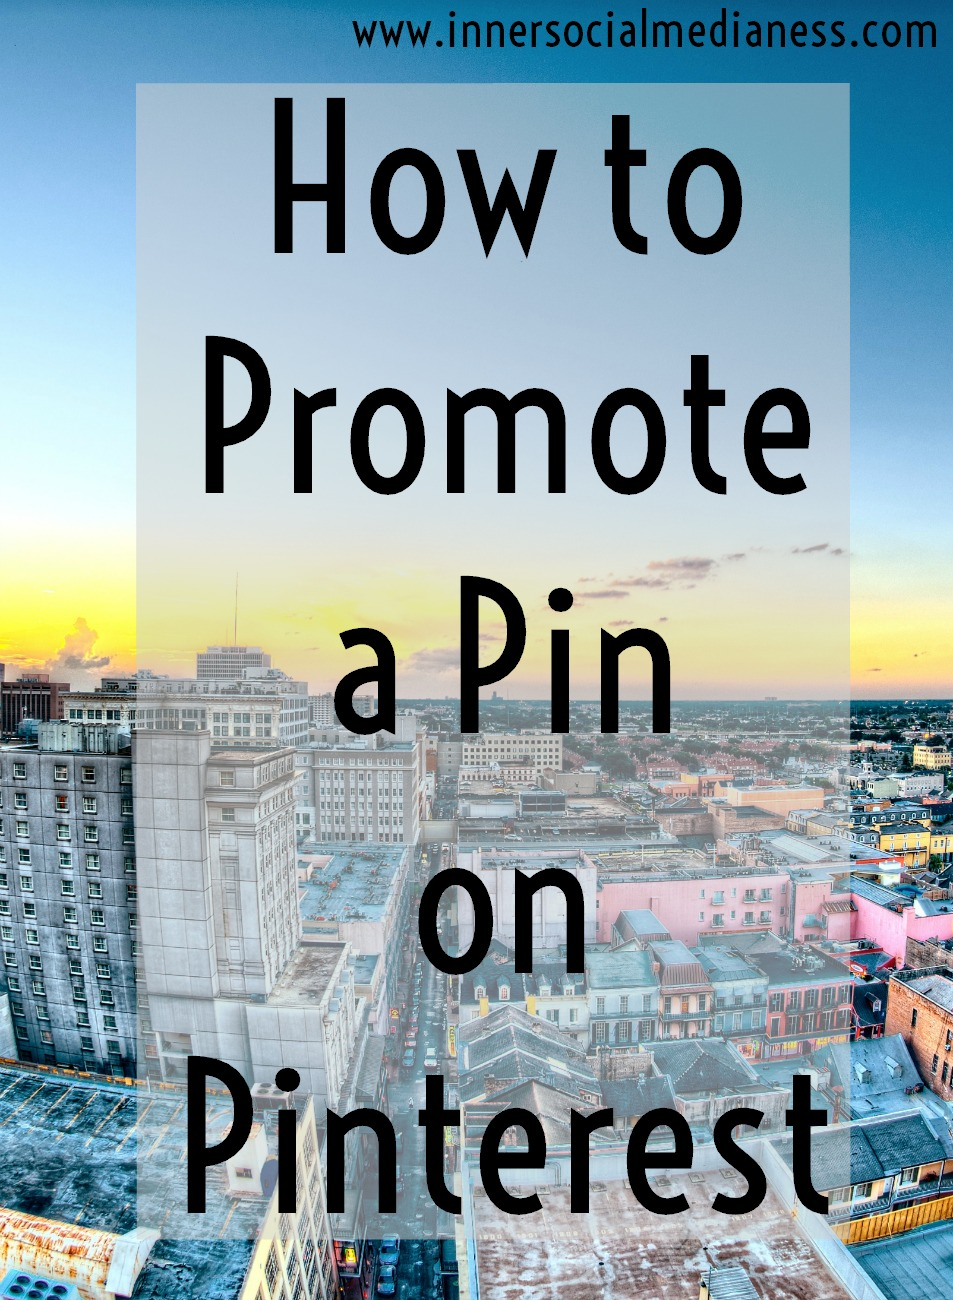 Do Pinterest Promoted Pins really work? Get the details about how to set up your Promoted Pins, how to make sure your pin gets approved and how to figure out which keywords to use to help more people repin your image.